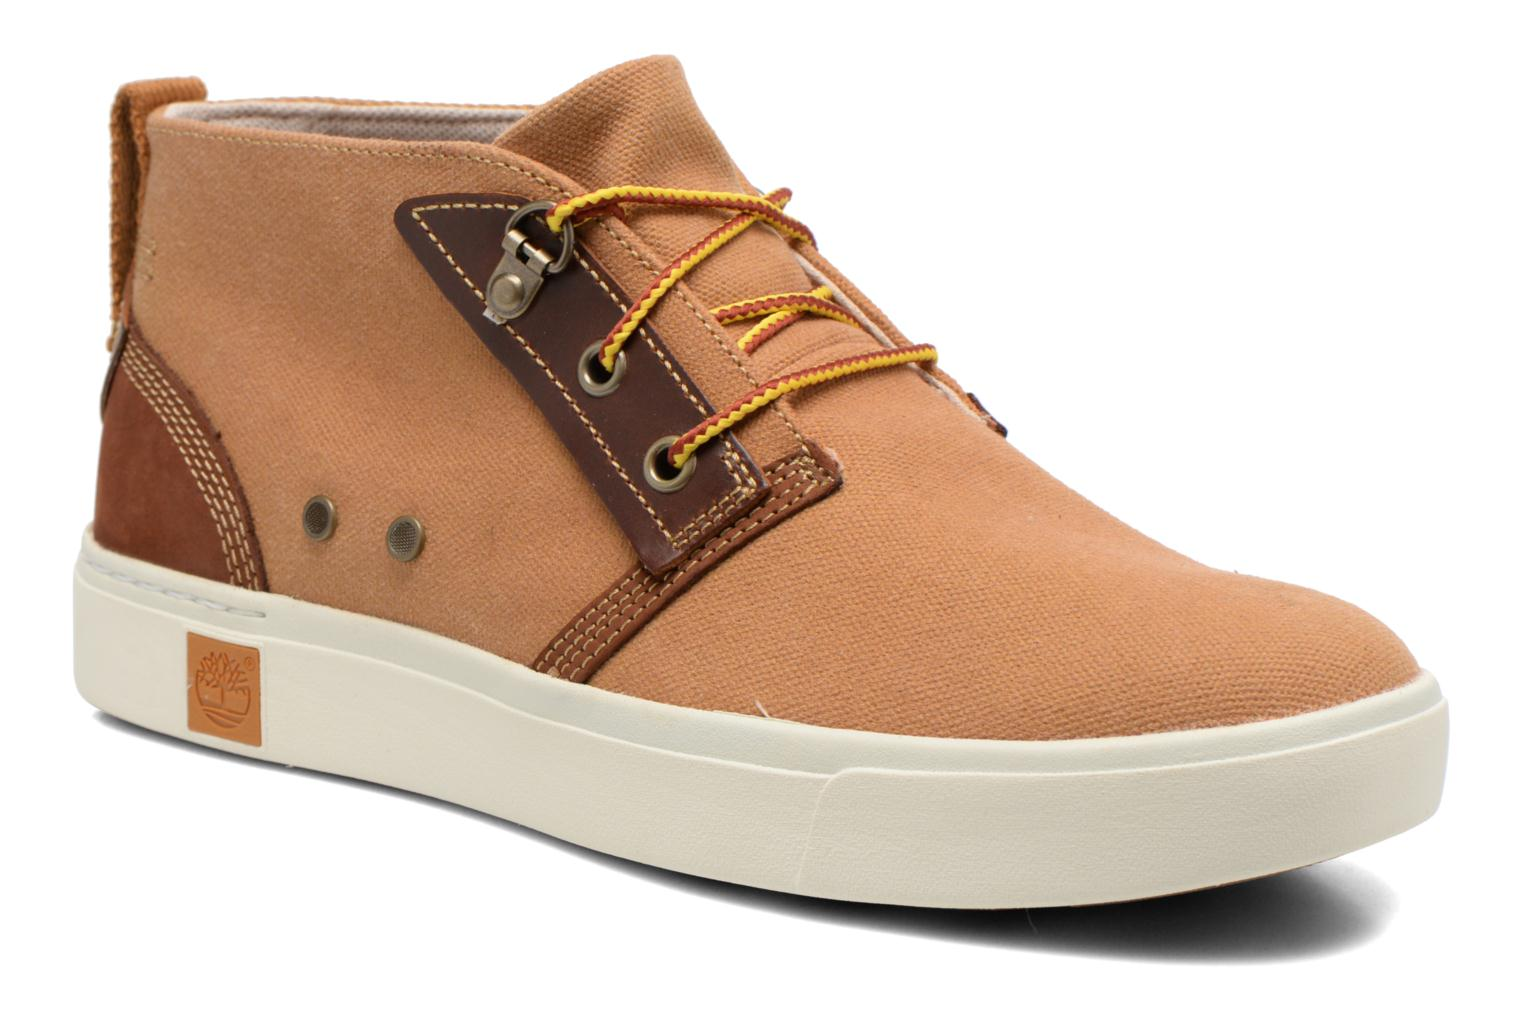 Amherst Chukka Bone Brown Washed Canvas